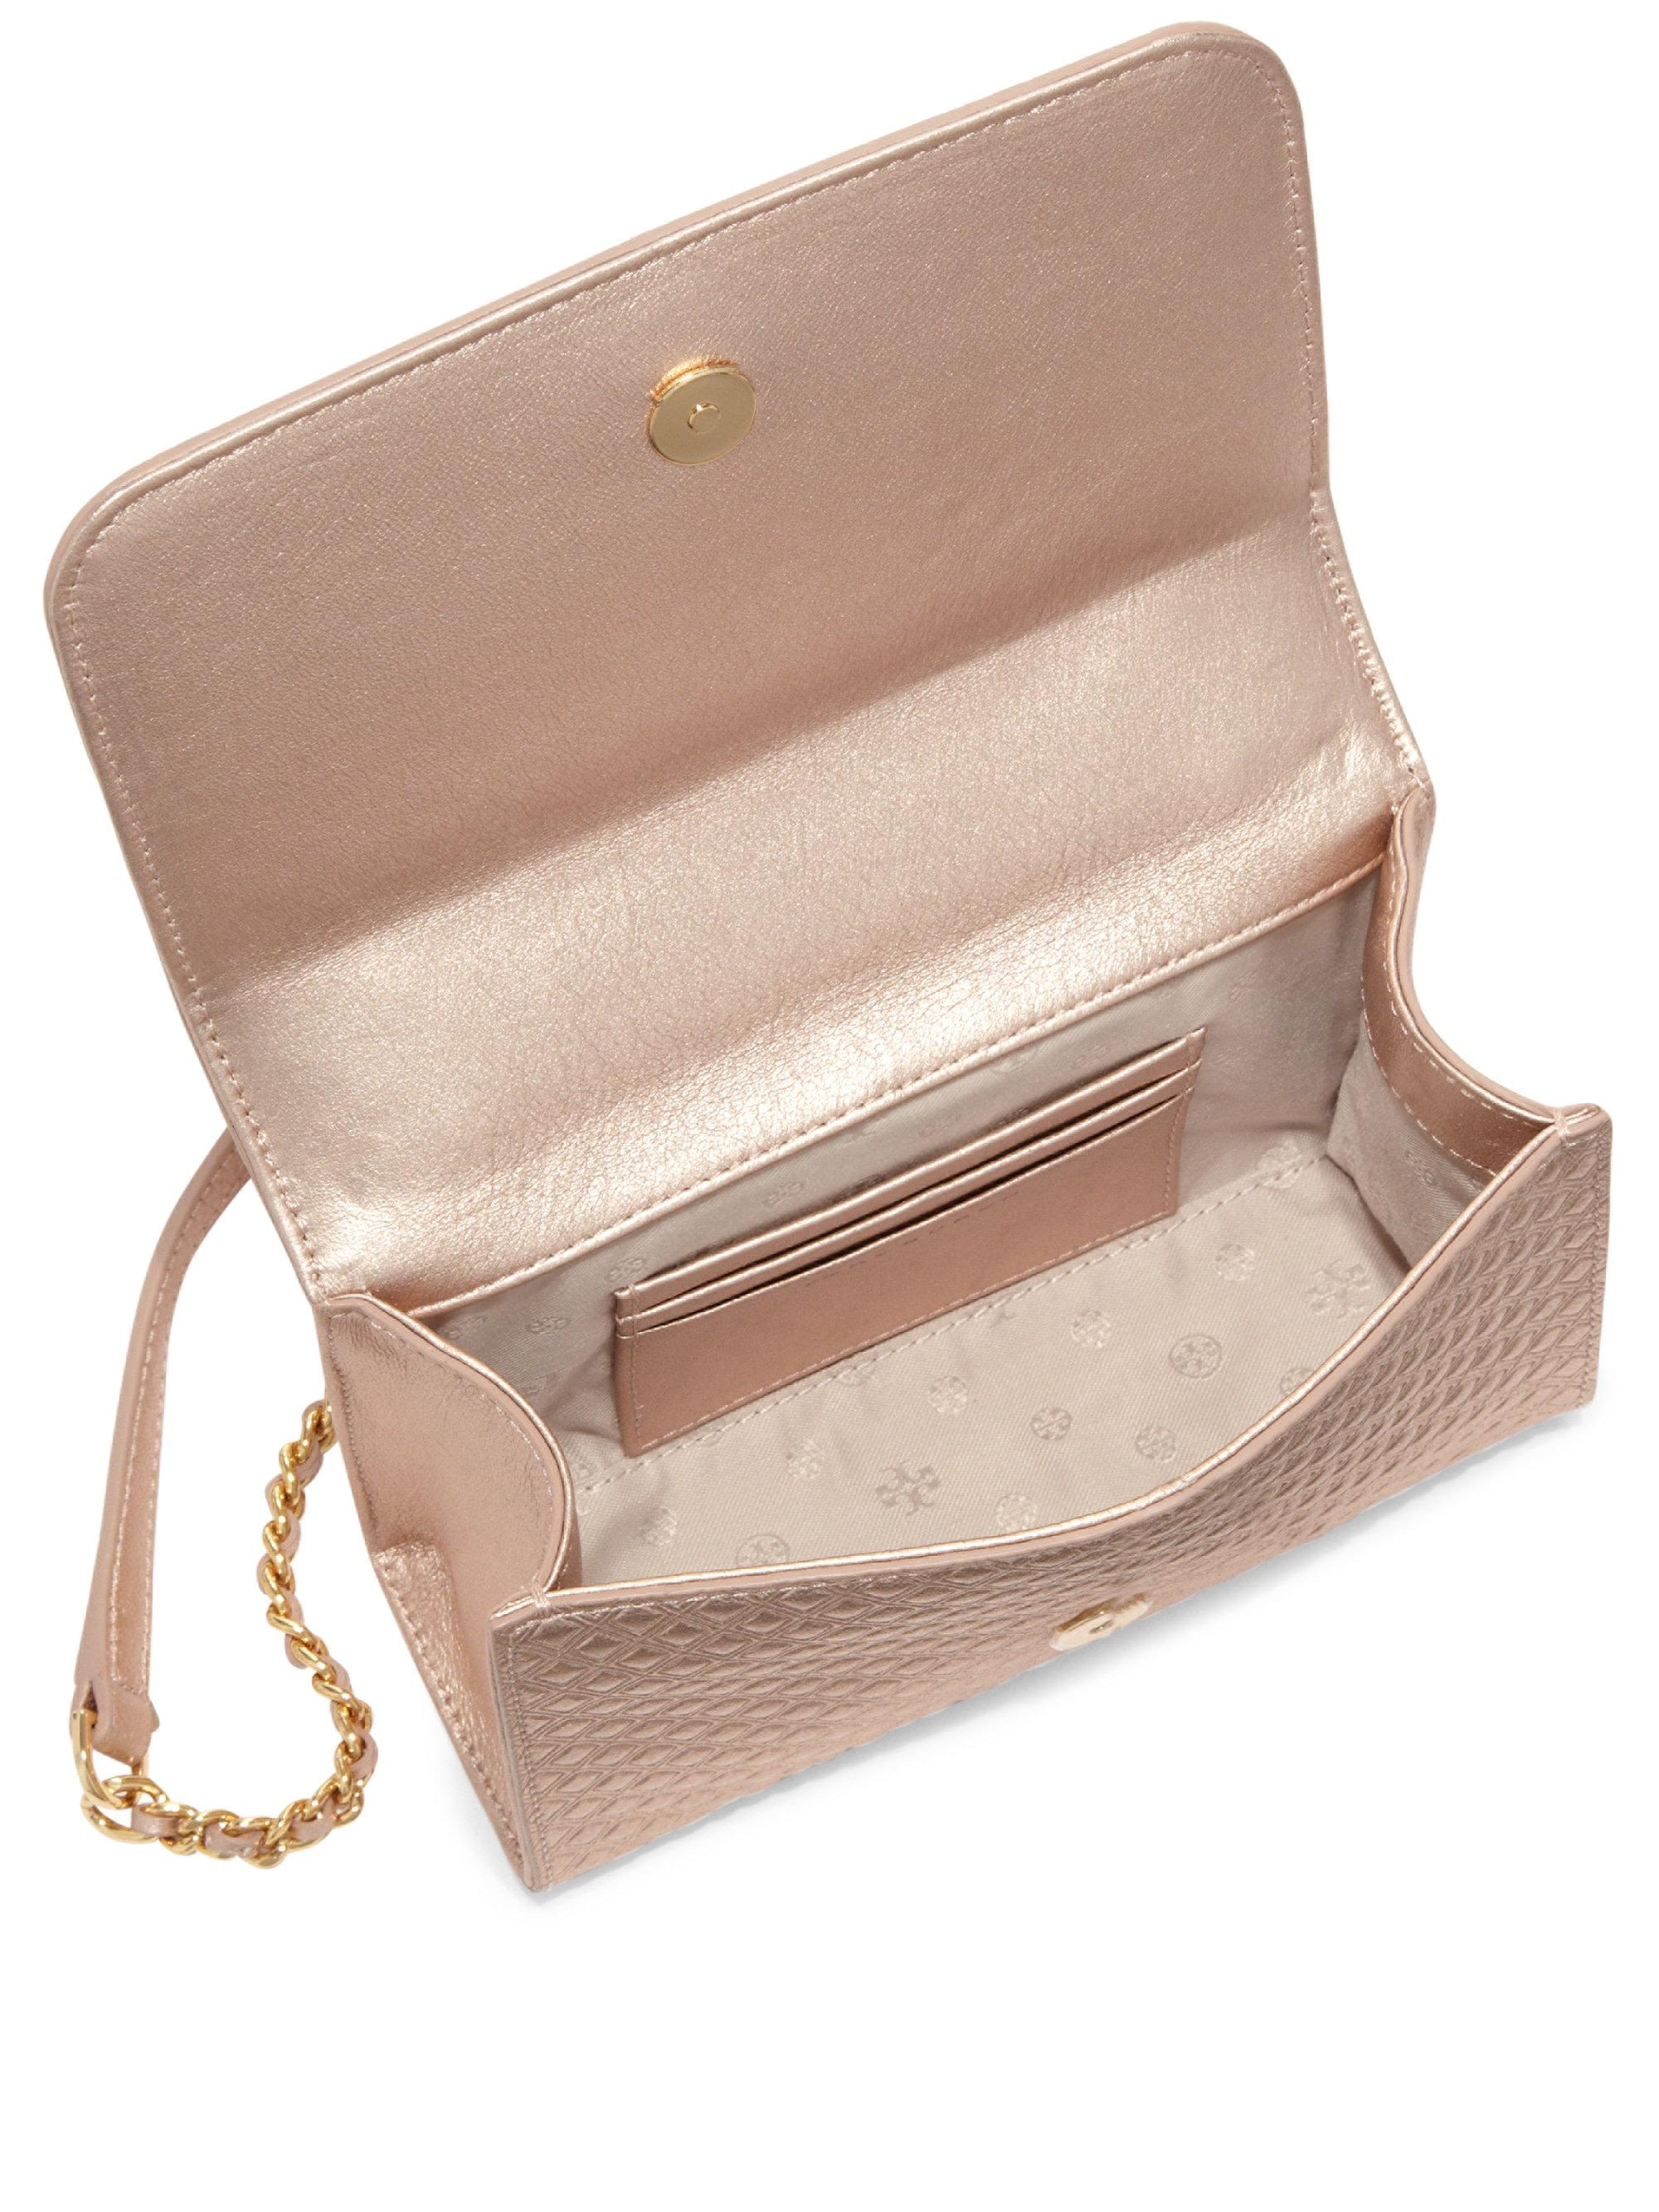 77132742741e Lyst - Tory Burch Marion Embossed Metallic Leather Chain Crossbody ...